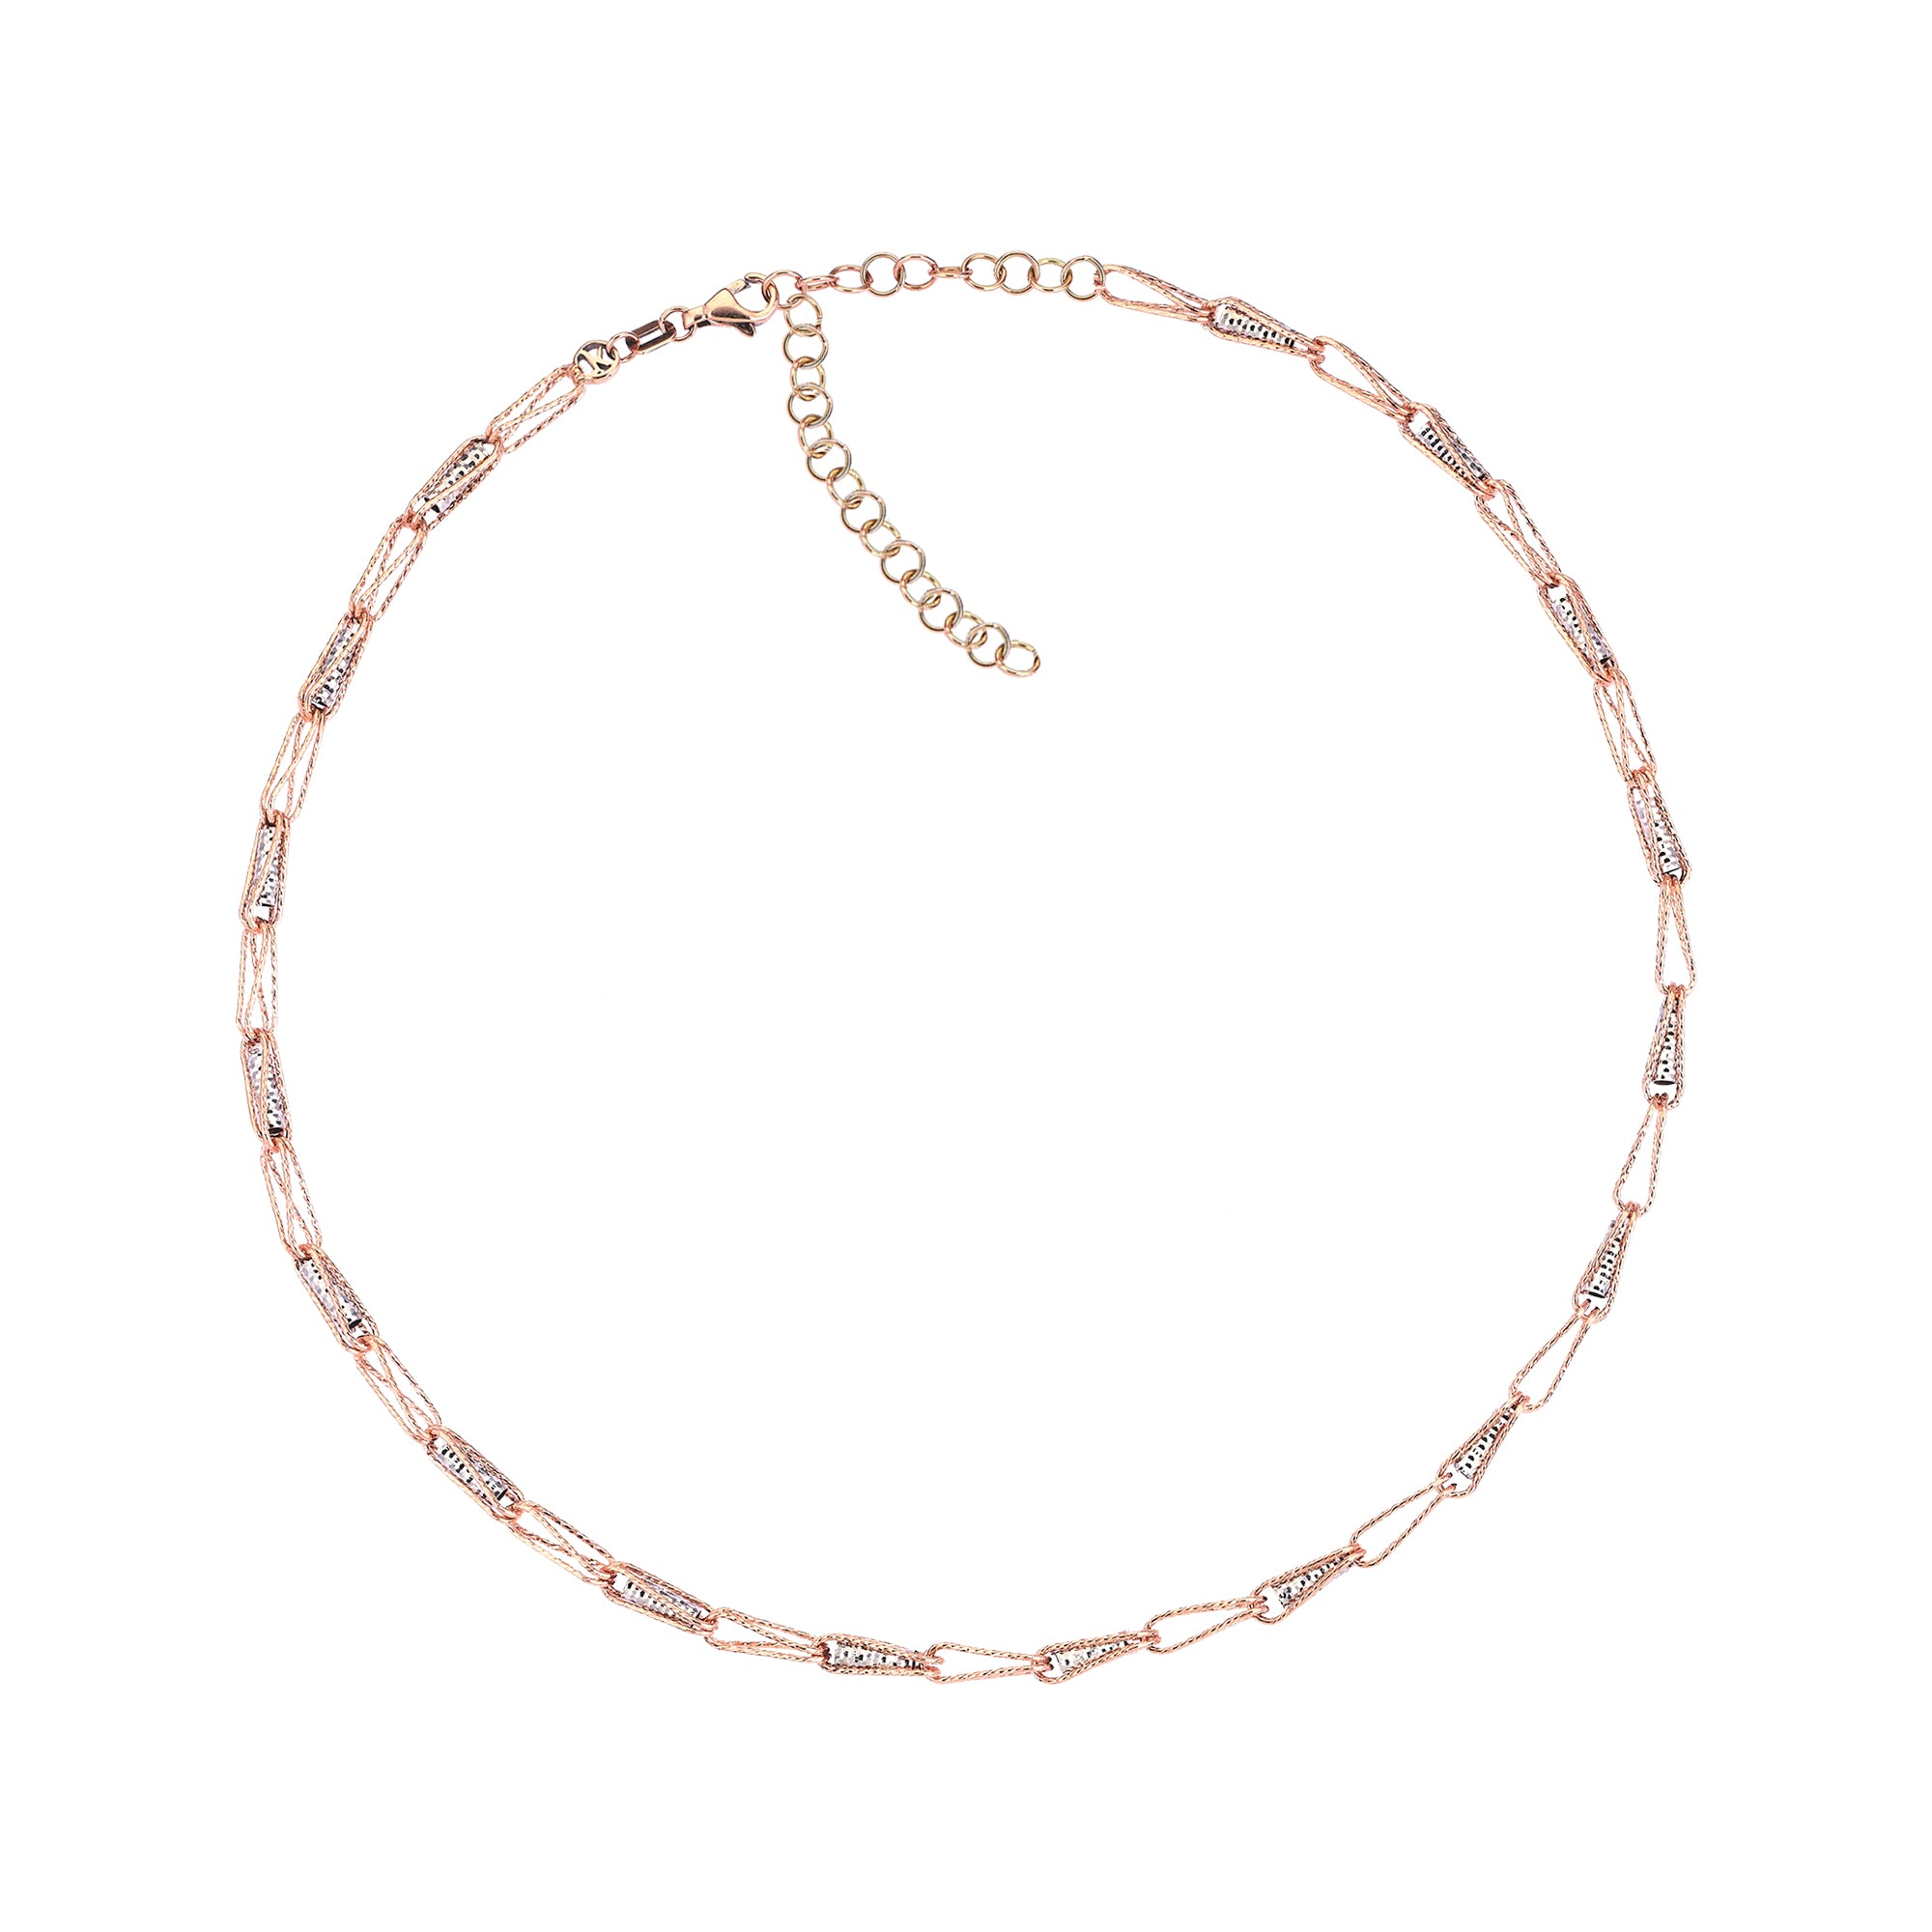 Sparkling Clips Choker by Kismet for Broken English Jewelry